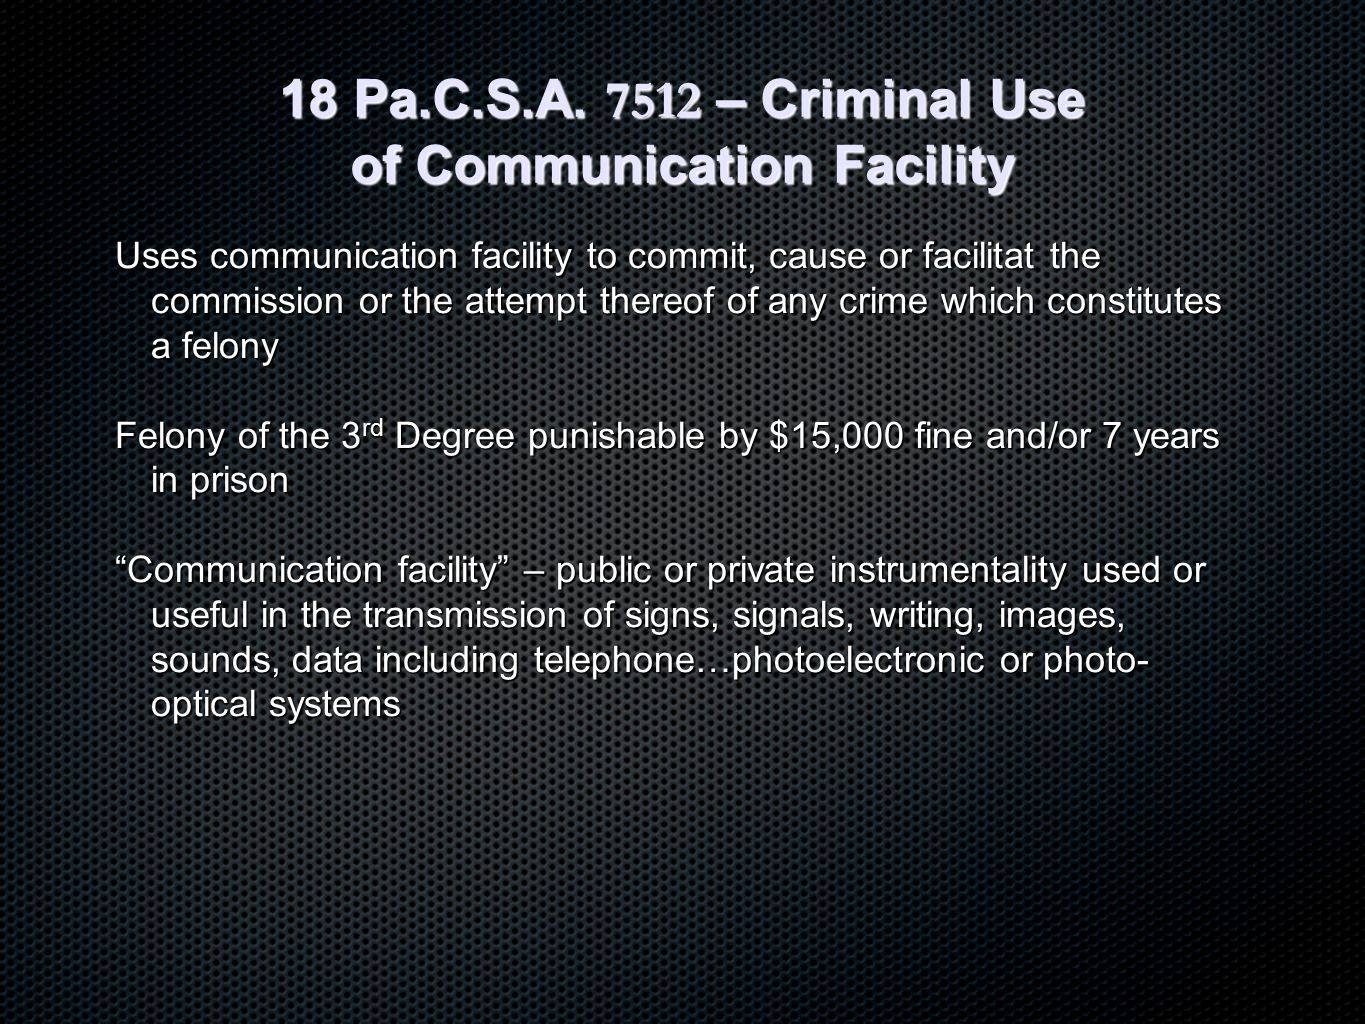 18 Pa.C.S.A. 7512 – Criminal Use of Communication Facility